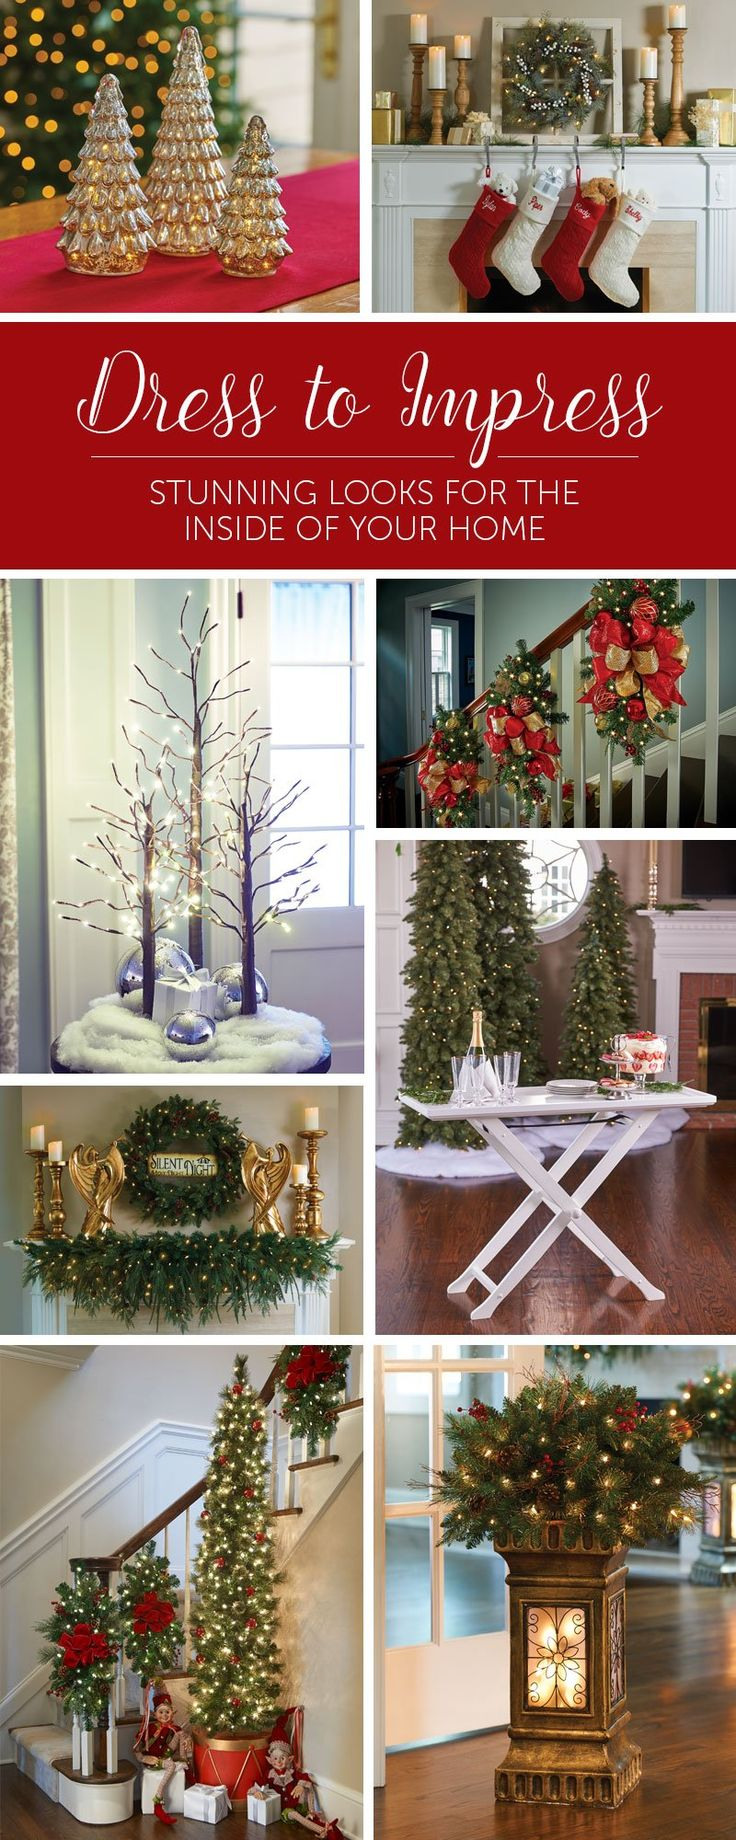 Your home improvements refference christmas dinner table decorations - Christmas Decor Ideas Dress Your Home To Impress